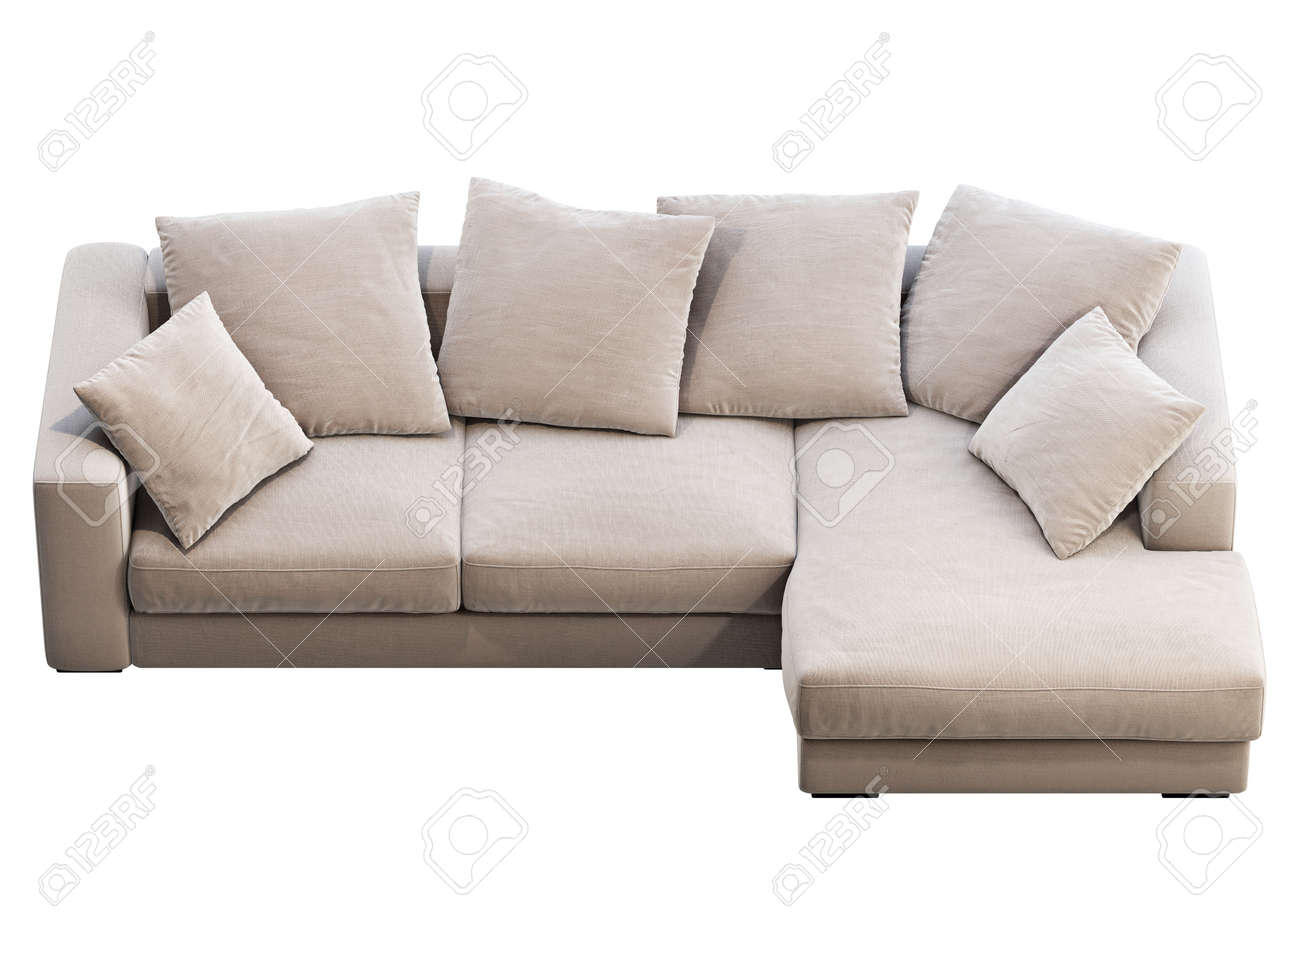 Modern Light Beige Chaise Lounge Fabric Sofa Textile Upholstery Stock Photo Picture And Royalty Free Image Image 150015580